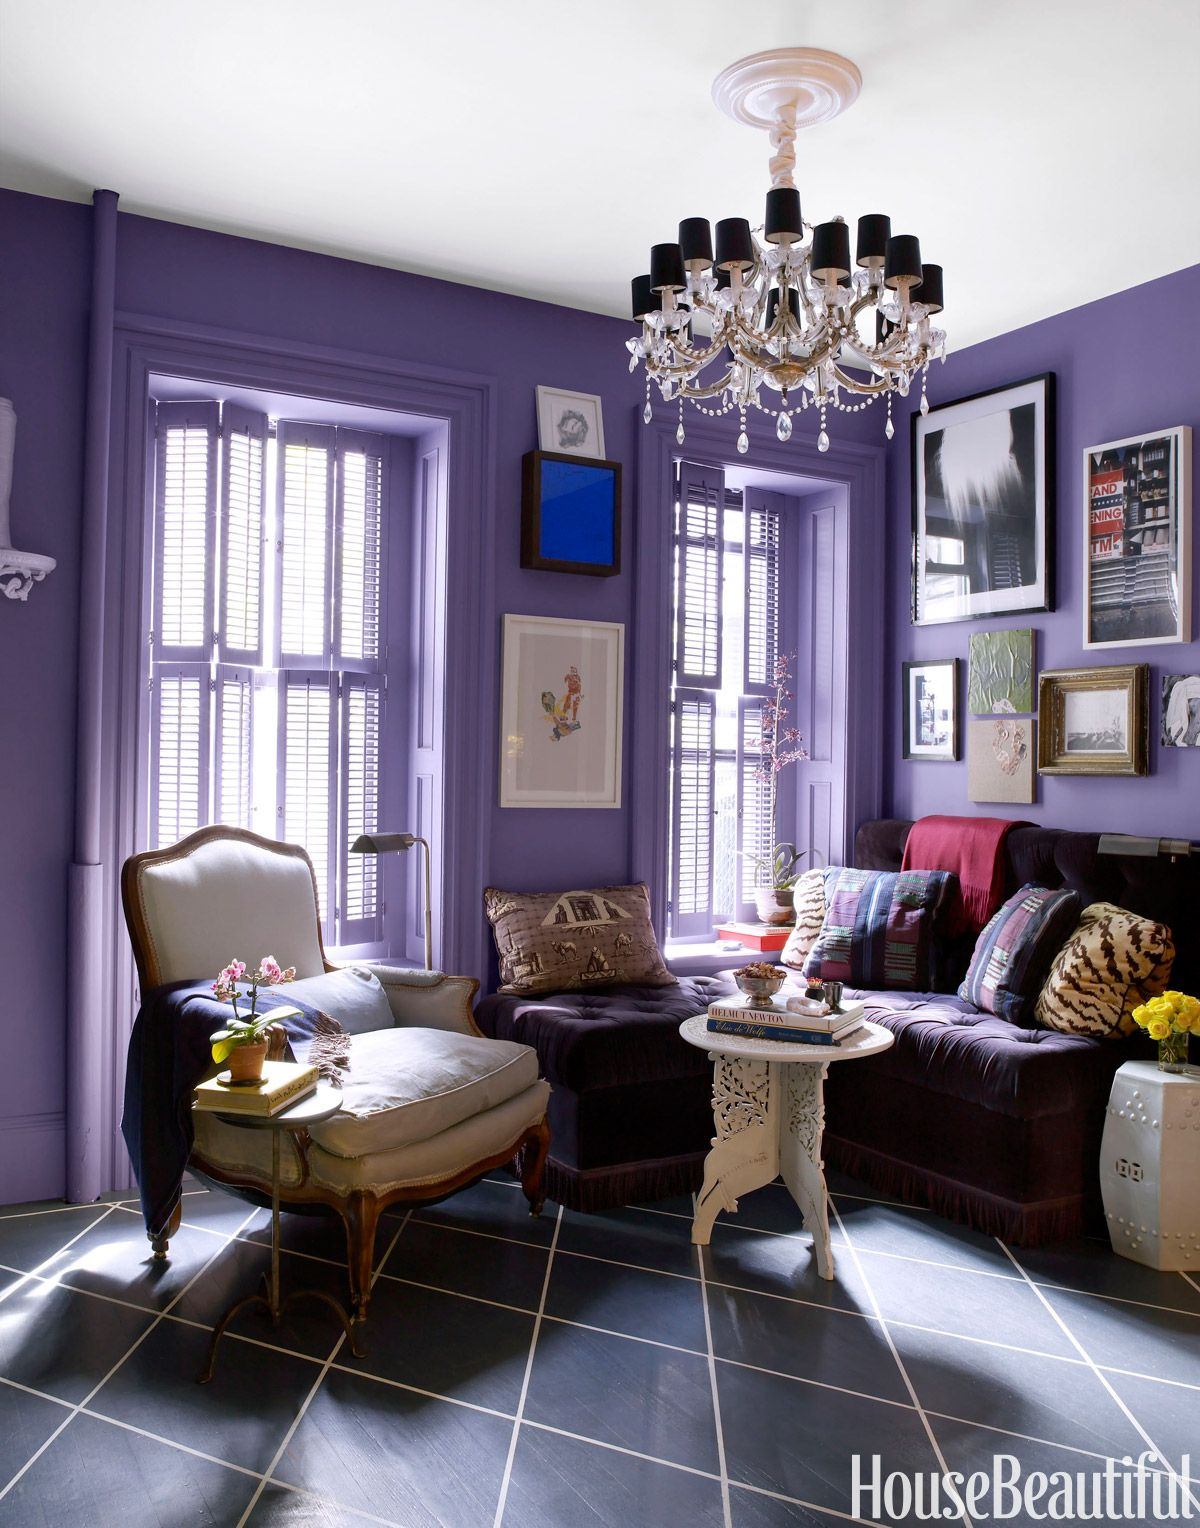 15 Best Living Room Color Ideas - Top Paint Colors for Living Rooms